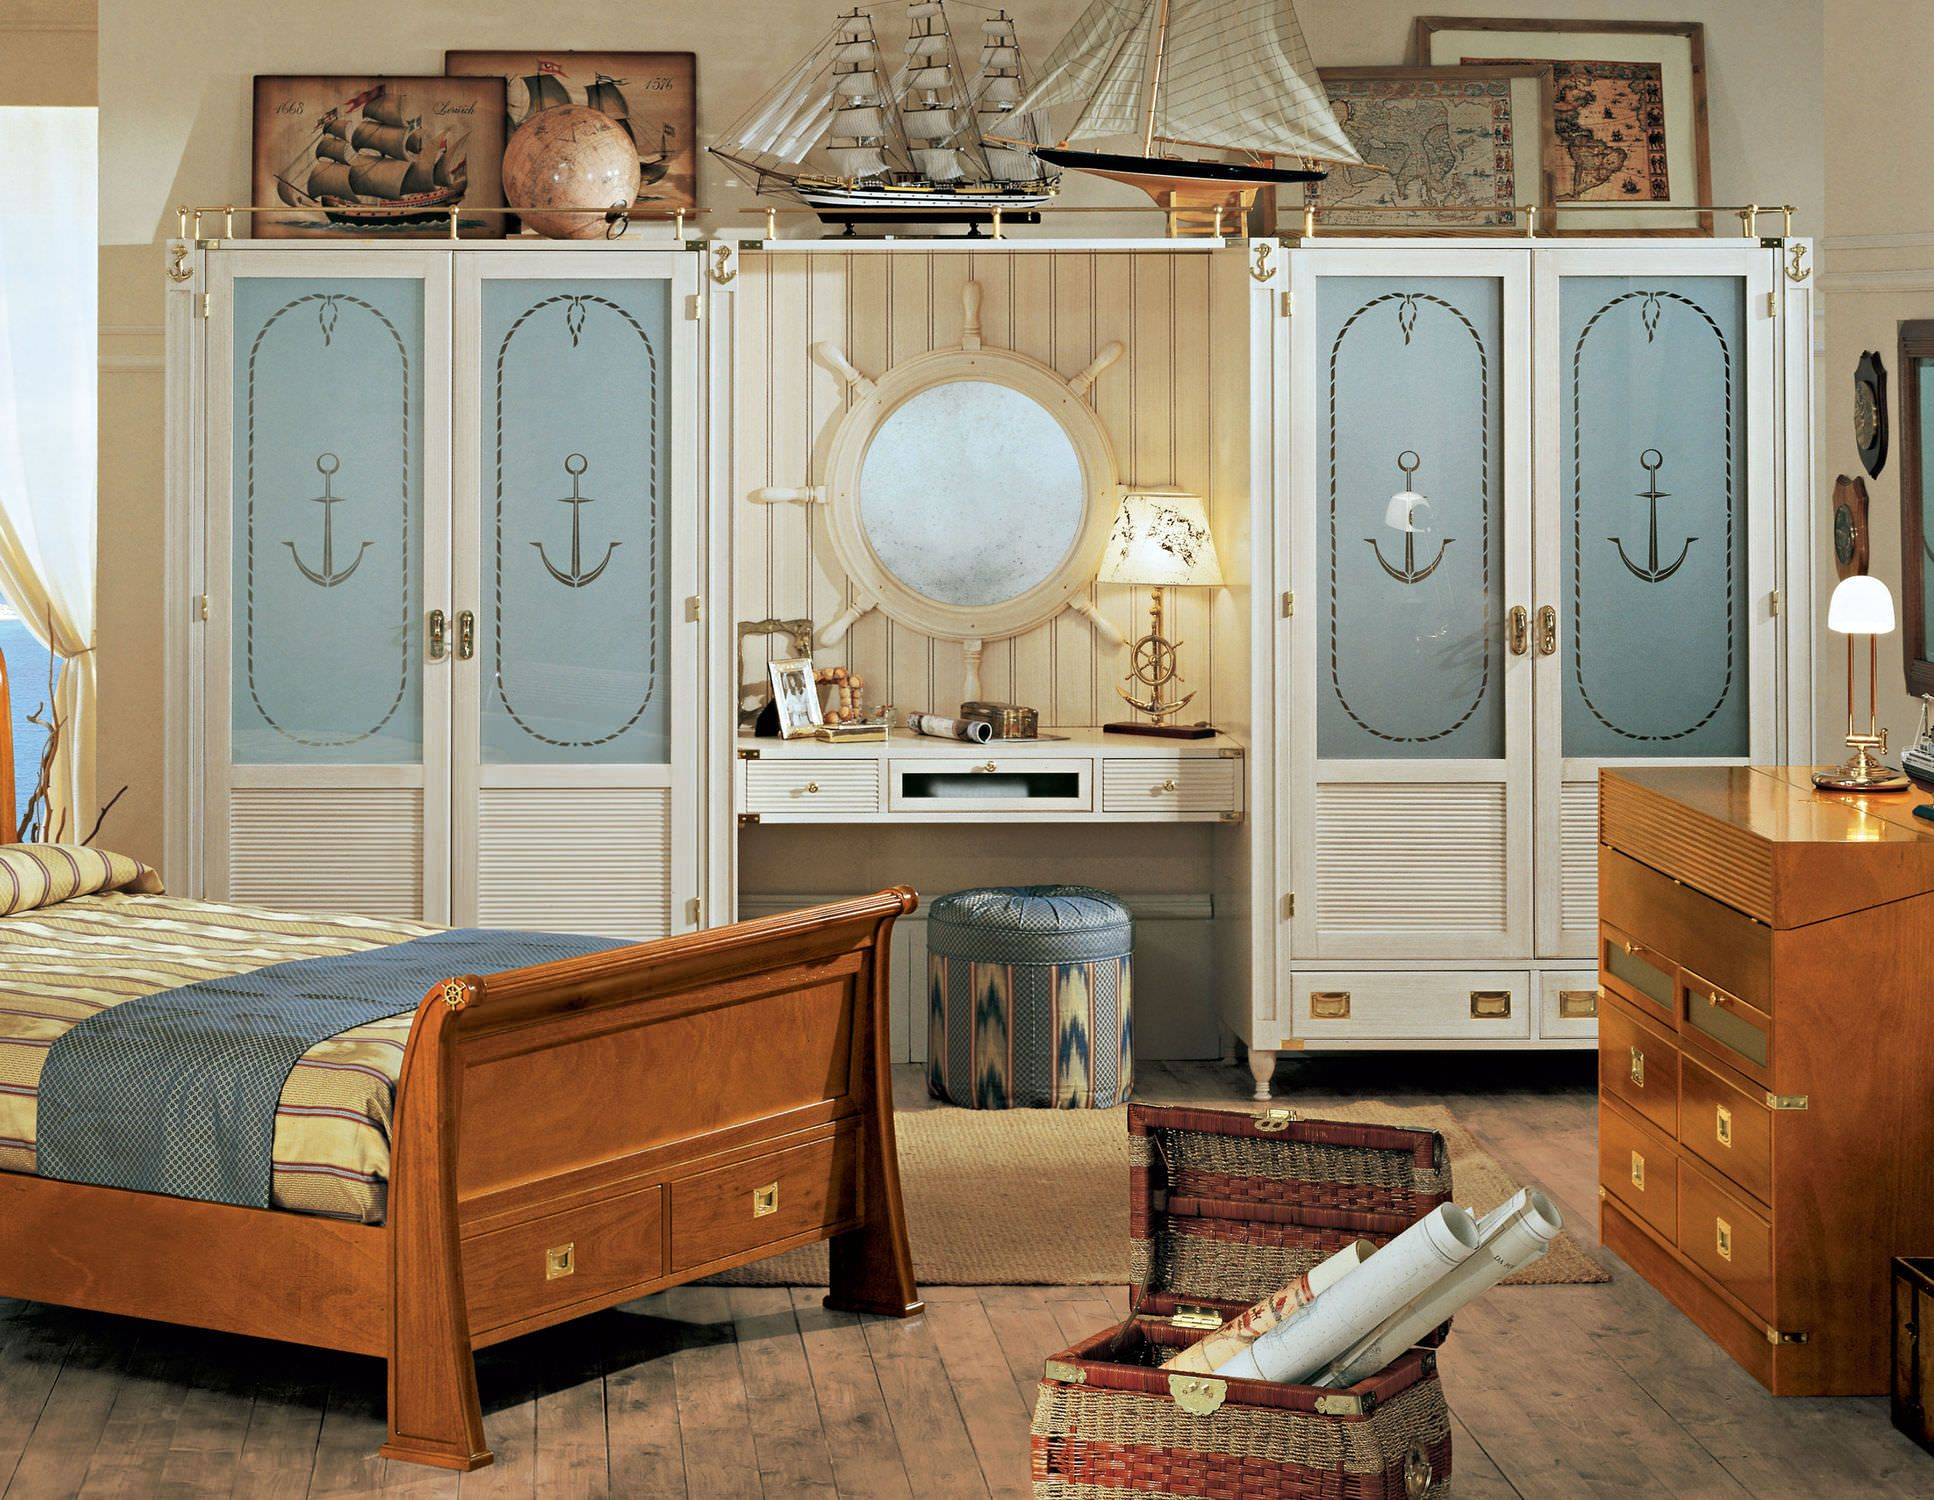 interesting nautical bedroom ideas for kid. Closet And Wardrobe Designs. Awesome Inspiring Nautical-Themed Decorating Kids Bedroom Ideas With Cool Classic Wooden Creamy-Colored Wardrob. Interesting Nautical For Kid B